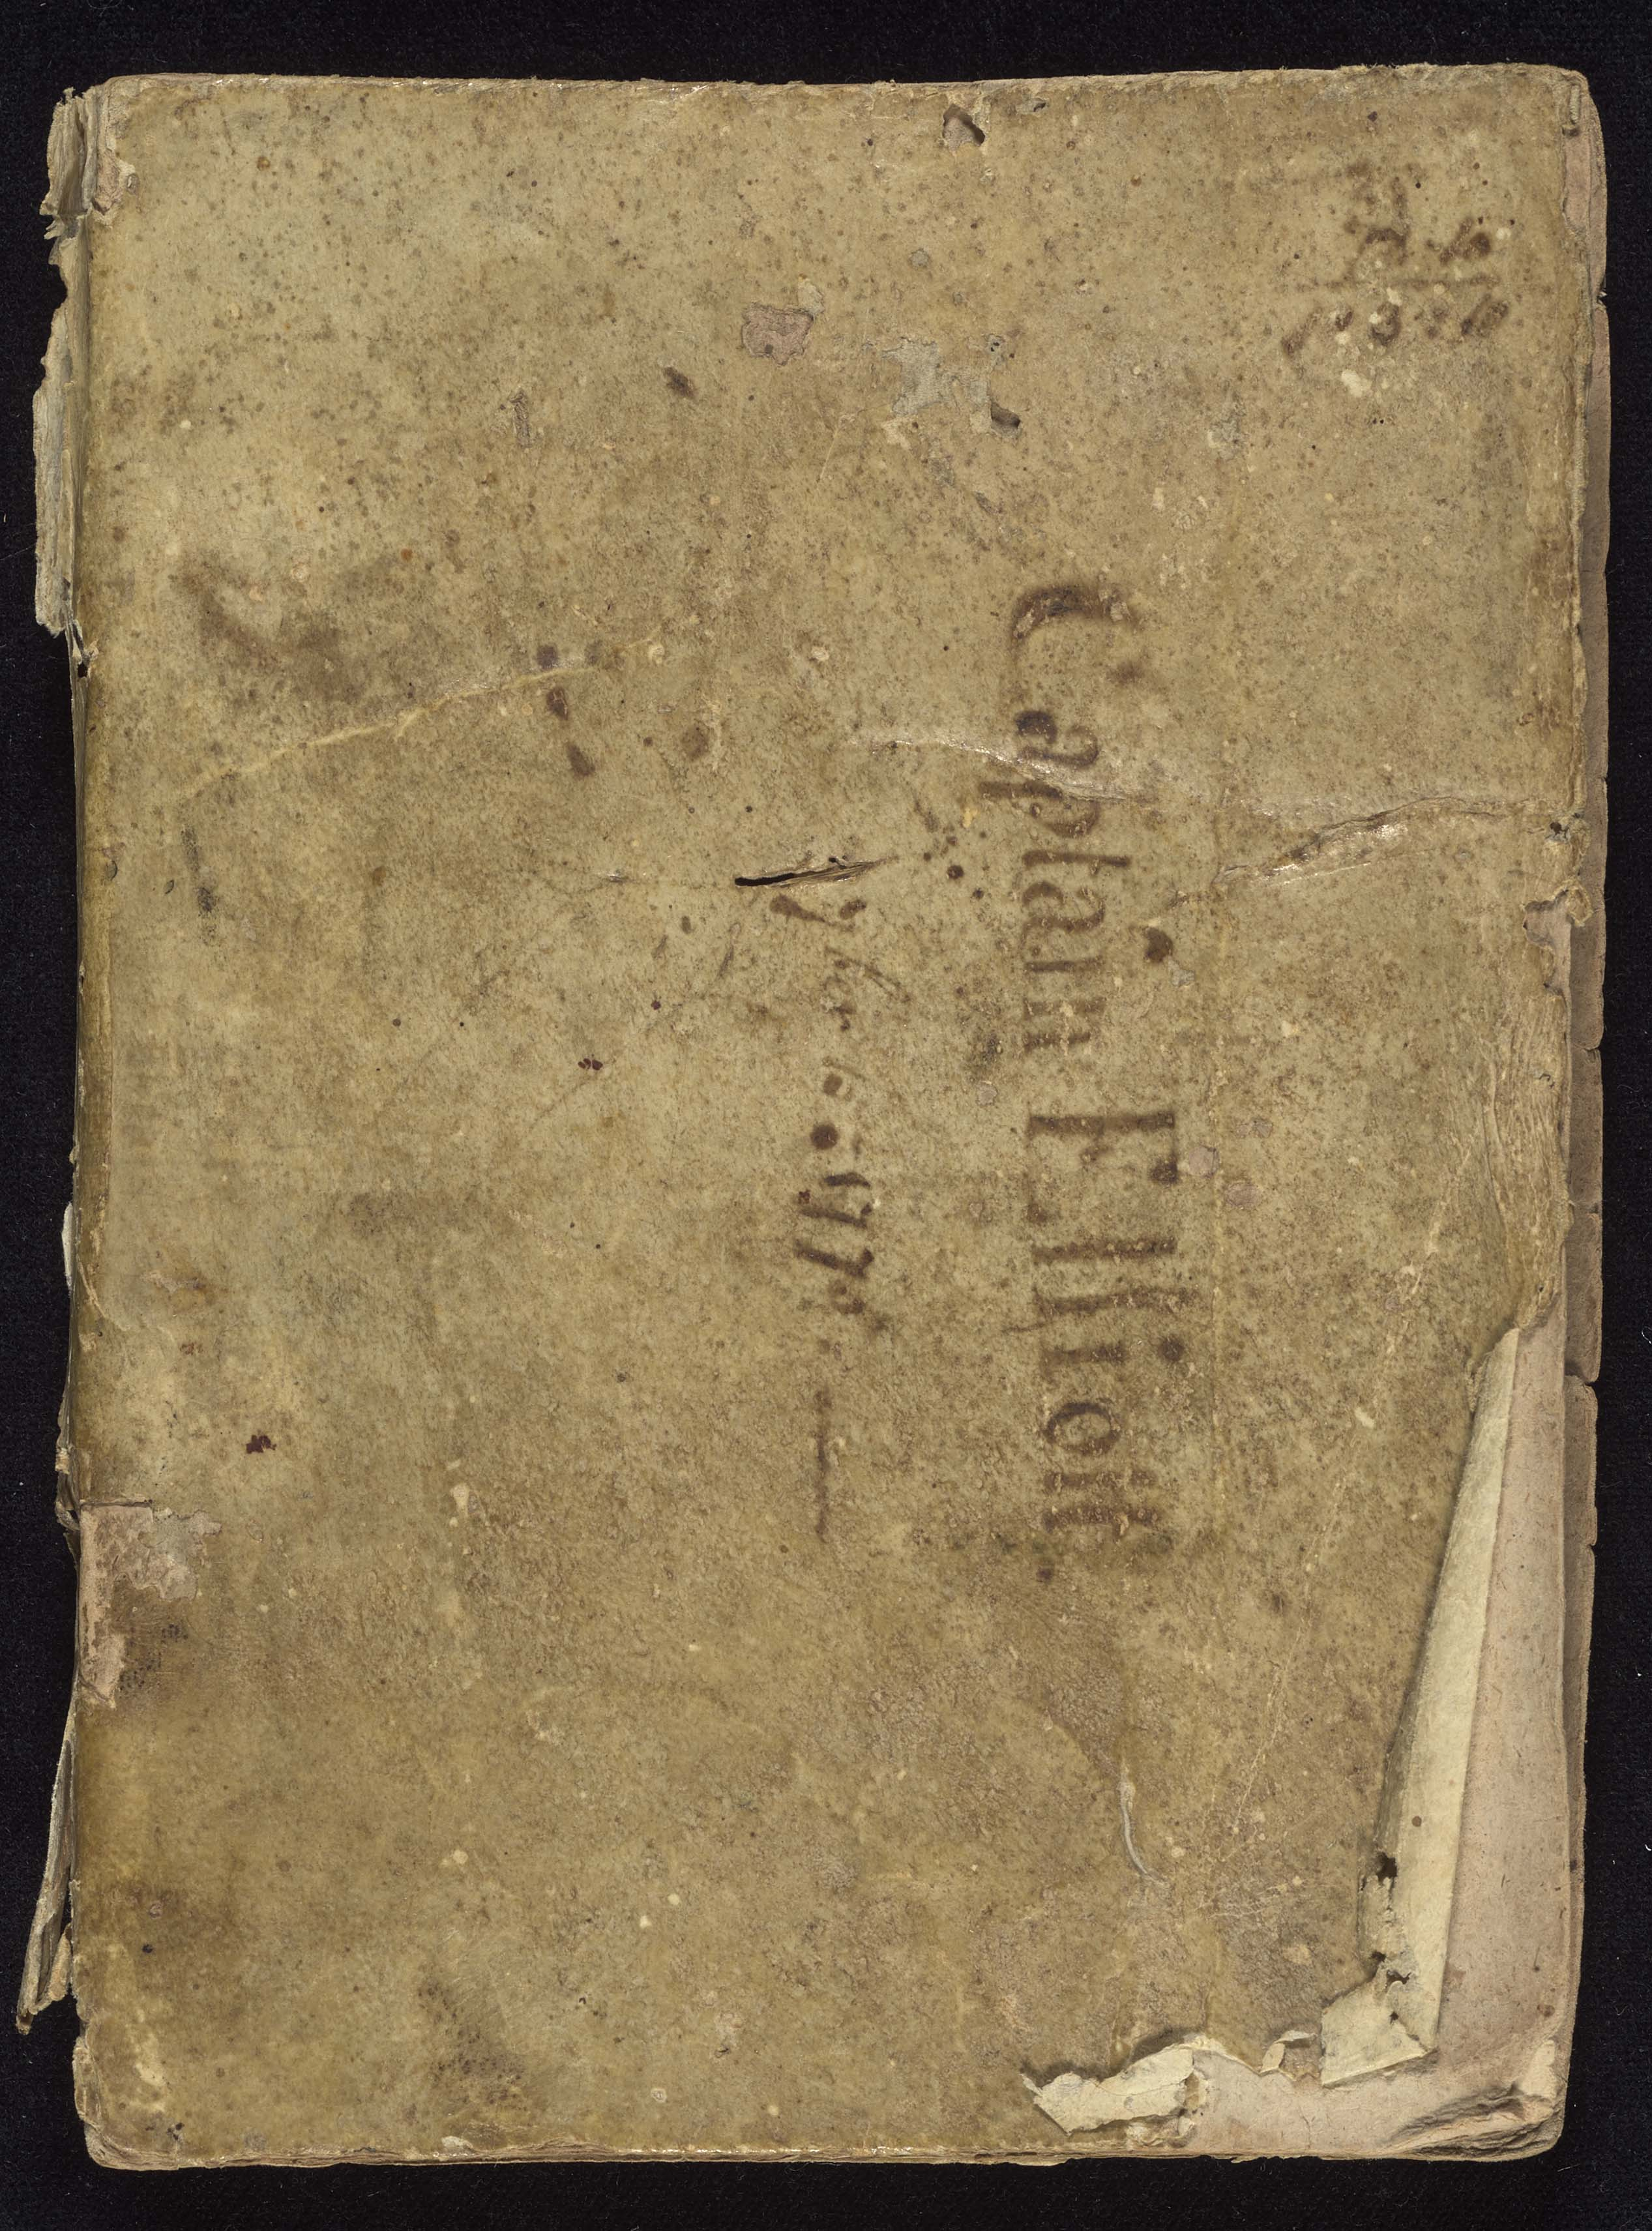 4th South Carolina Regiment Order Book, Cover